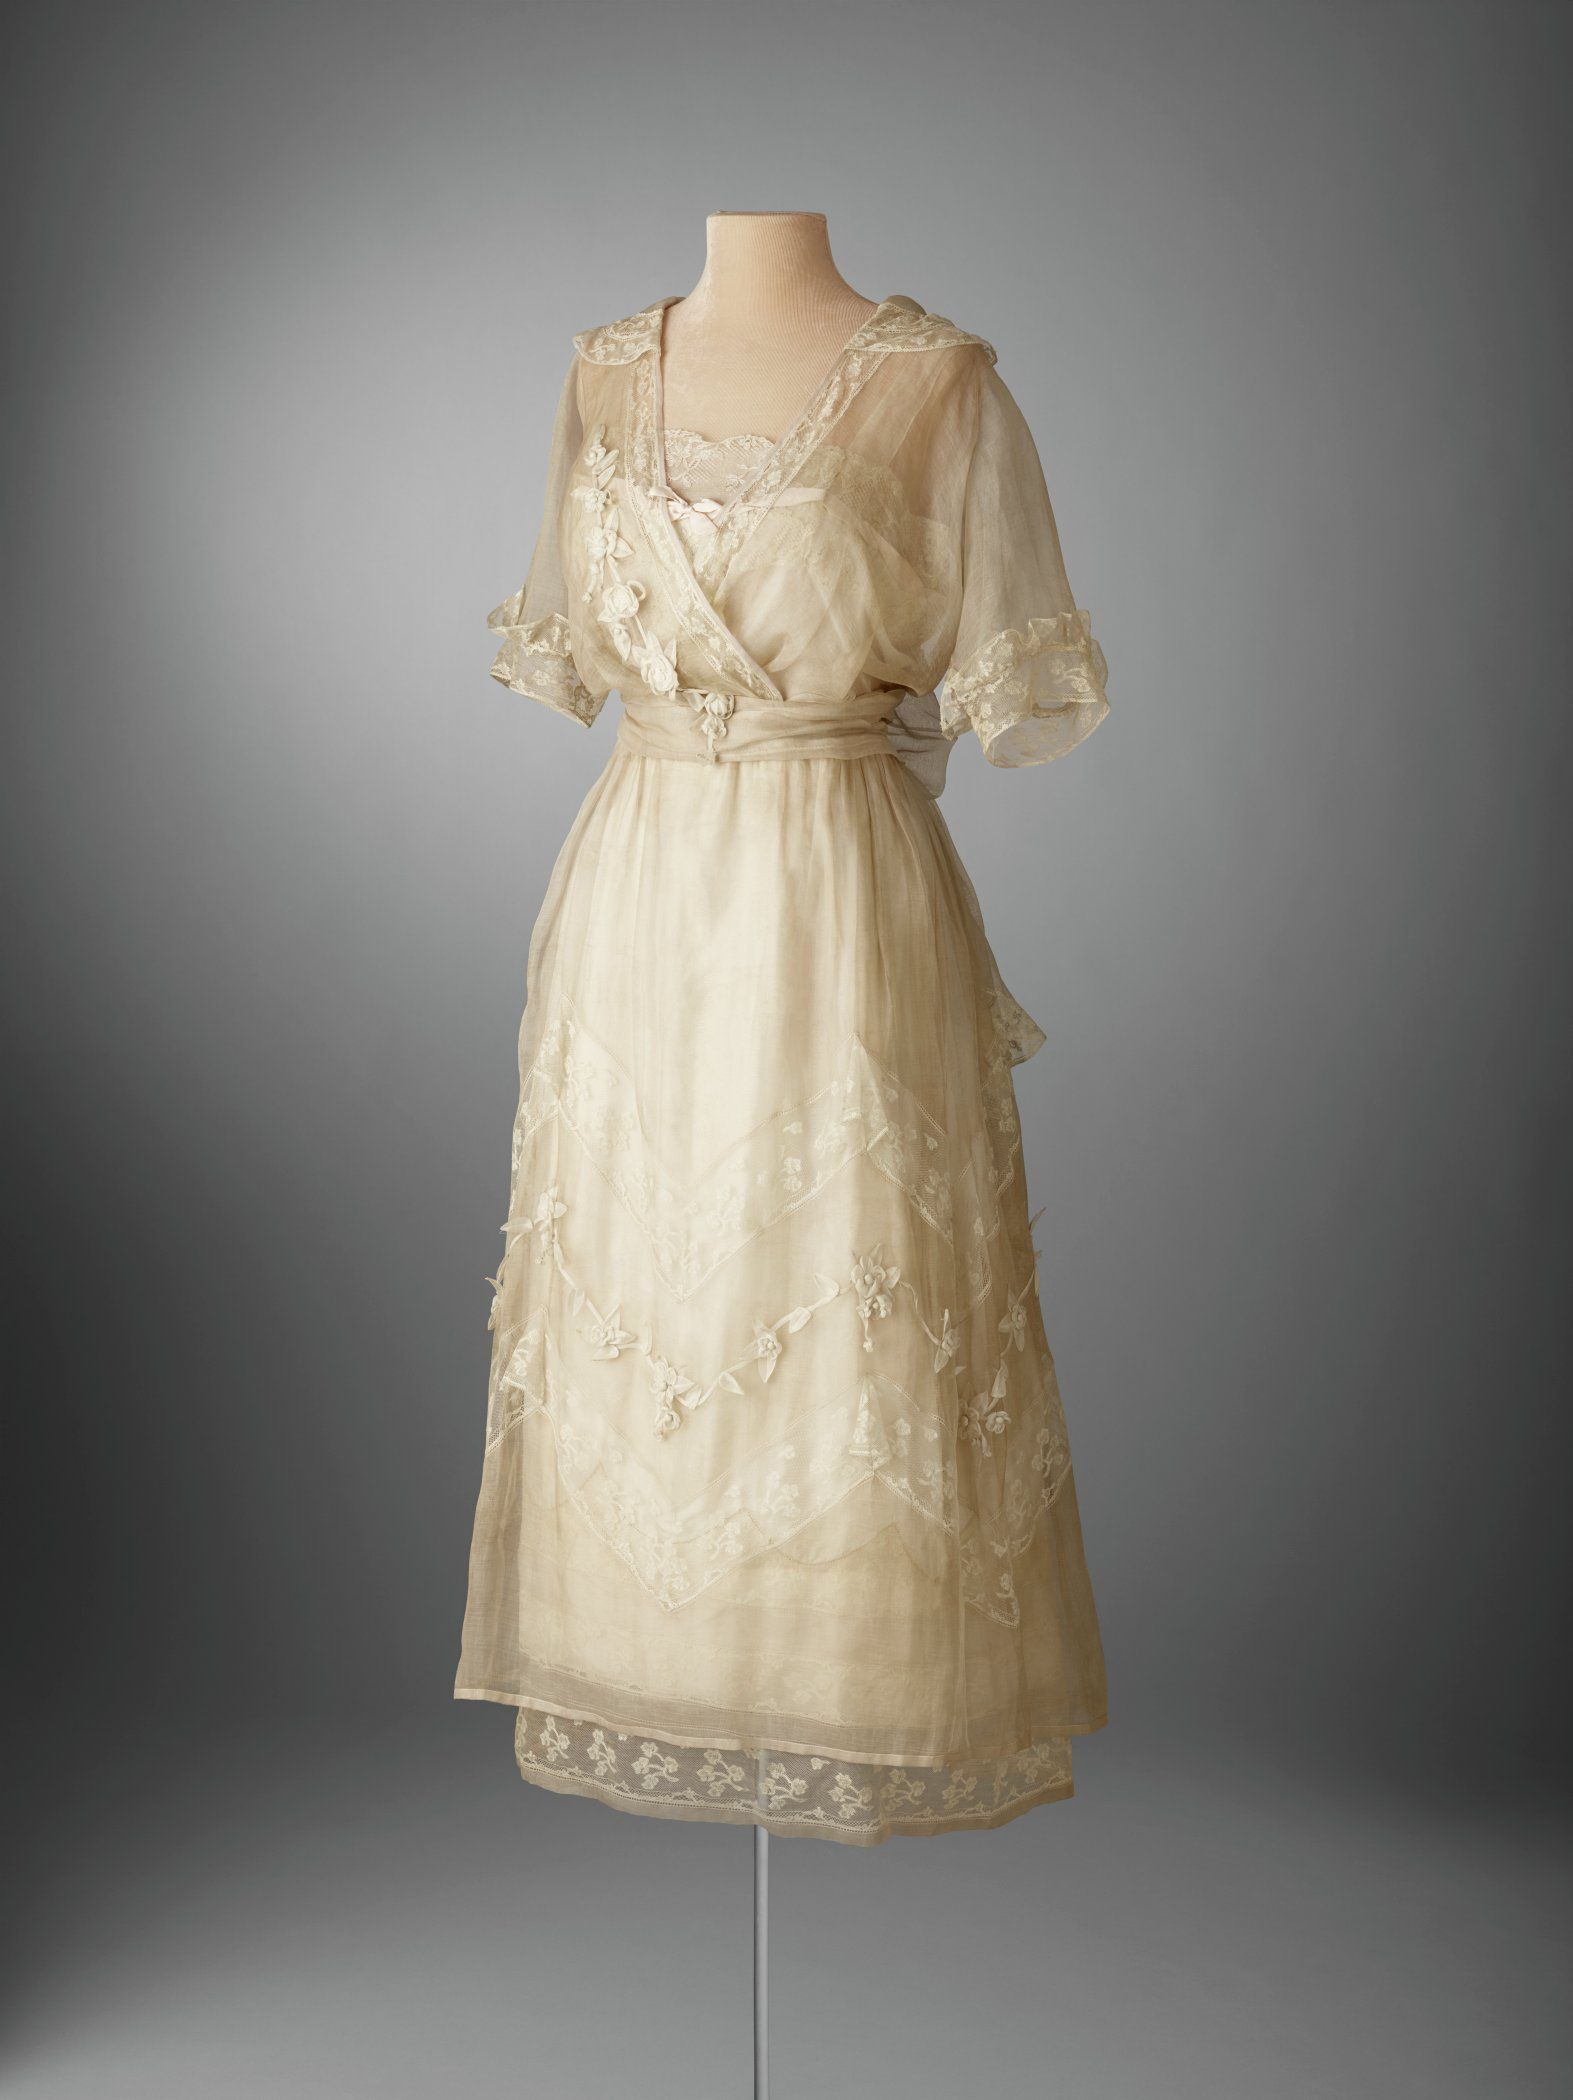 1920 lace dress    Mrs Post wore this dress for her wedding to EF Hutton on